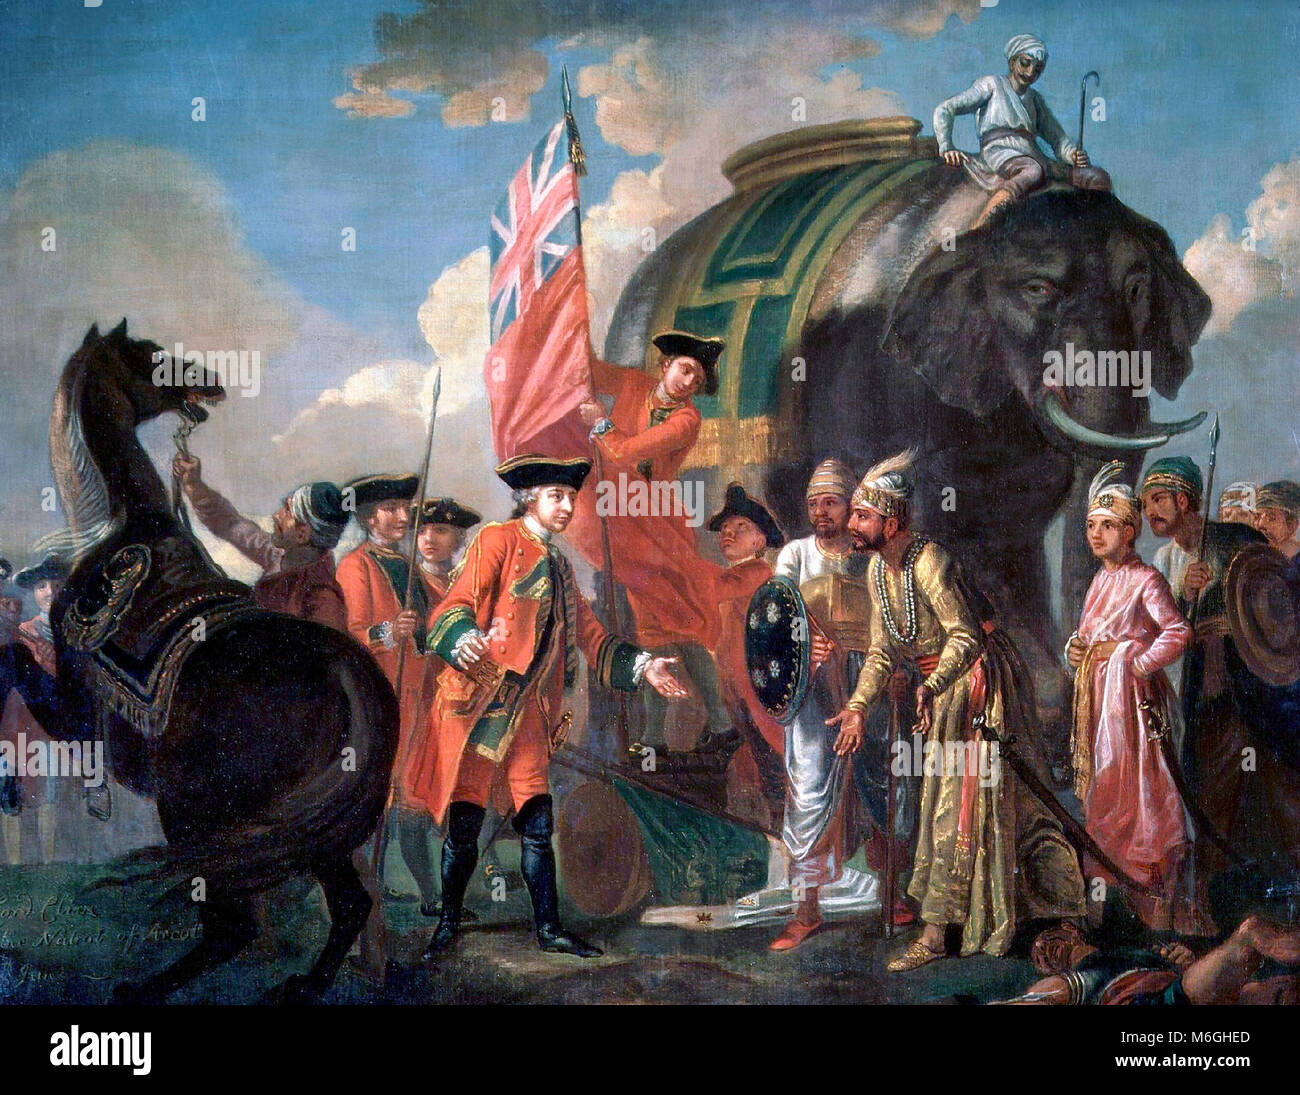 Robert Clive and Mir Jafar after the Battle of Plassey, 1757. Francis Hayman, 1760 - Stock Image